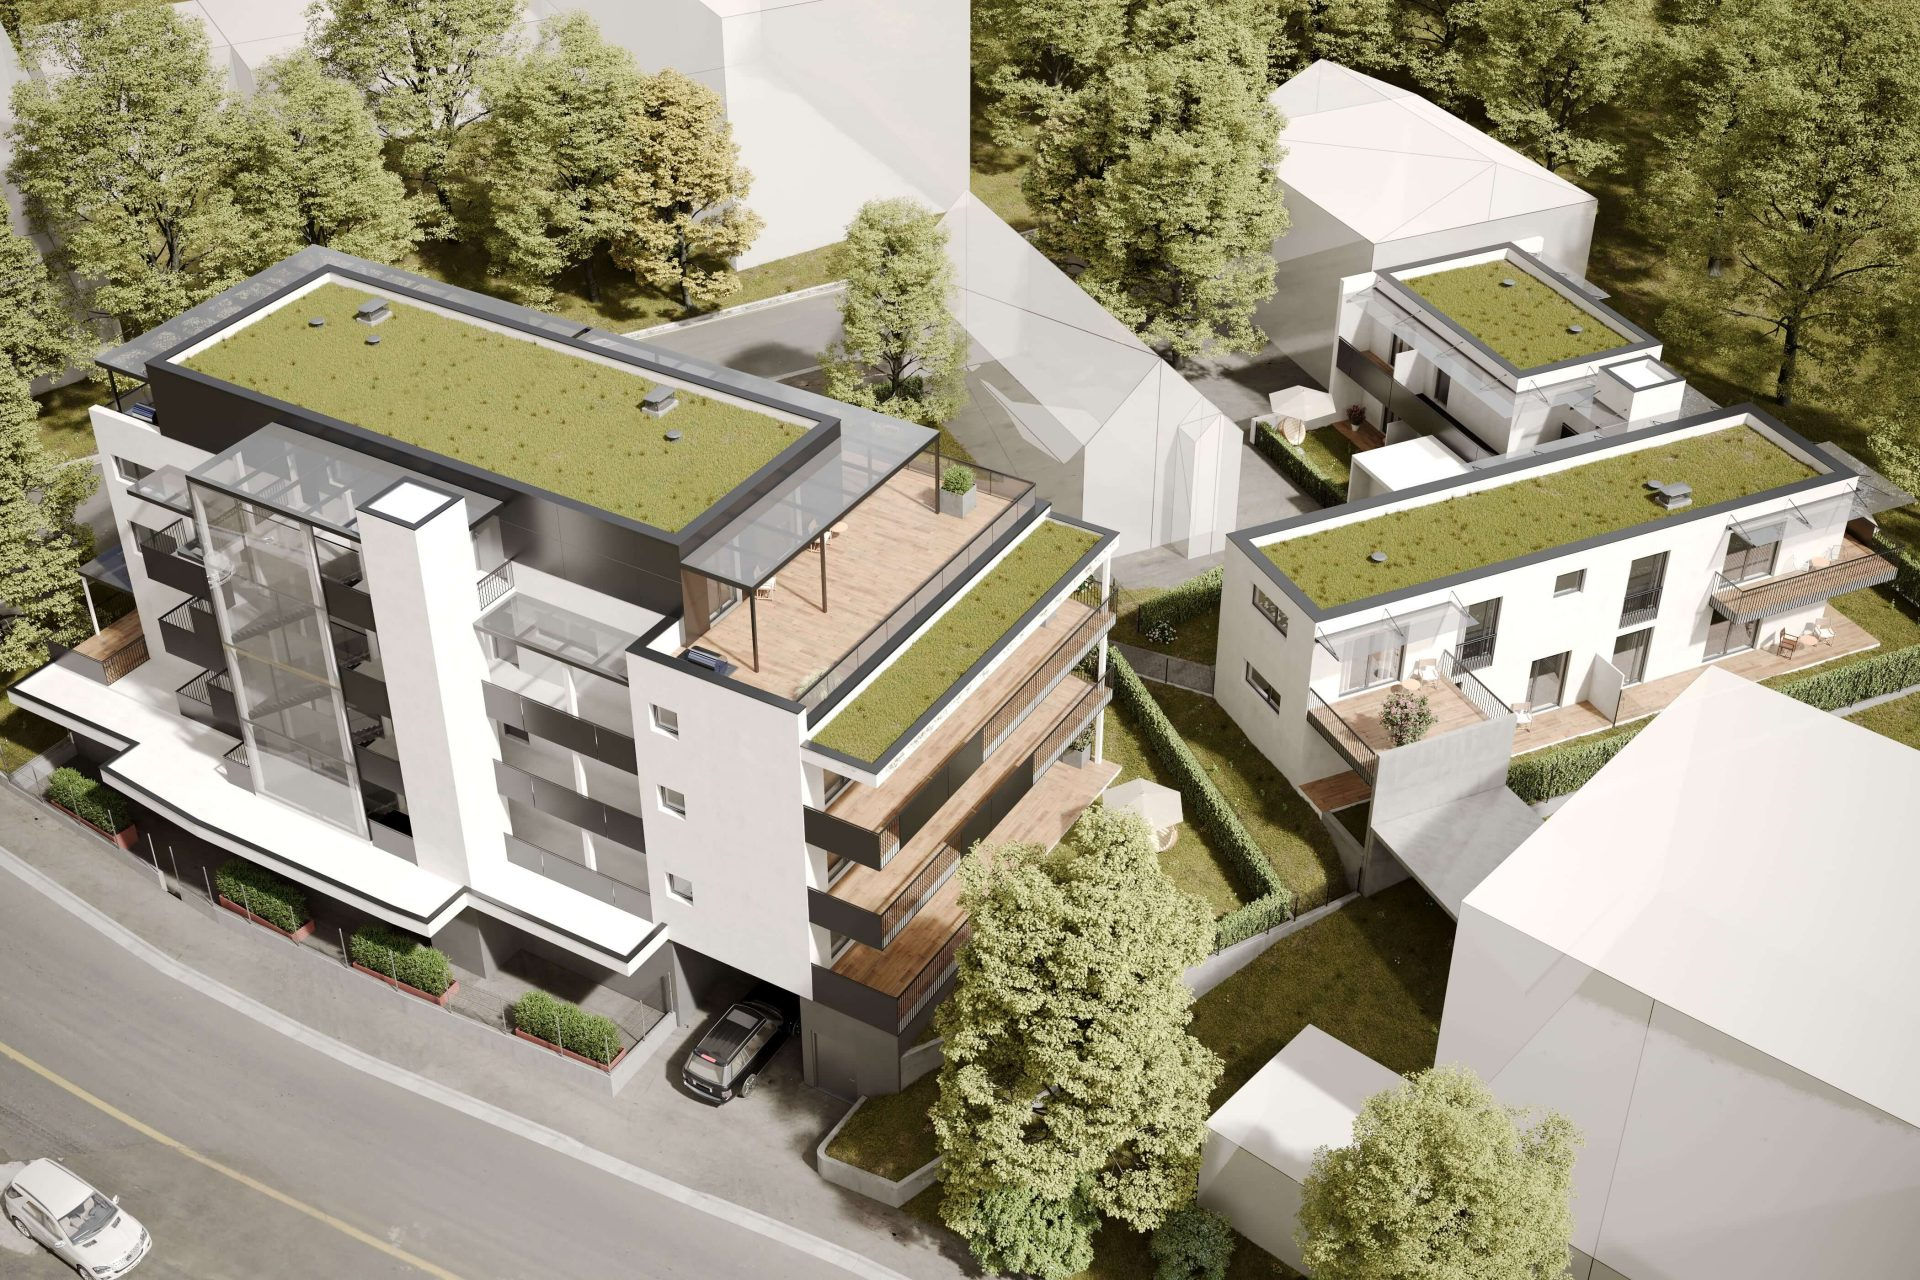 Aerial 3D Render of a Residential Complex Showing Rooftop Gardens